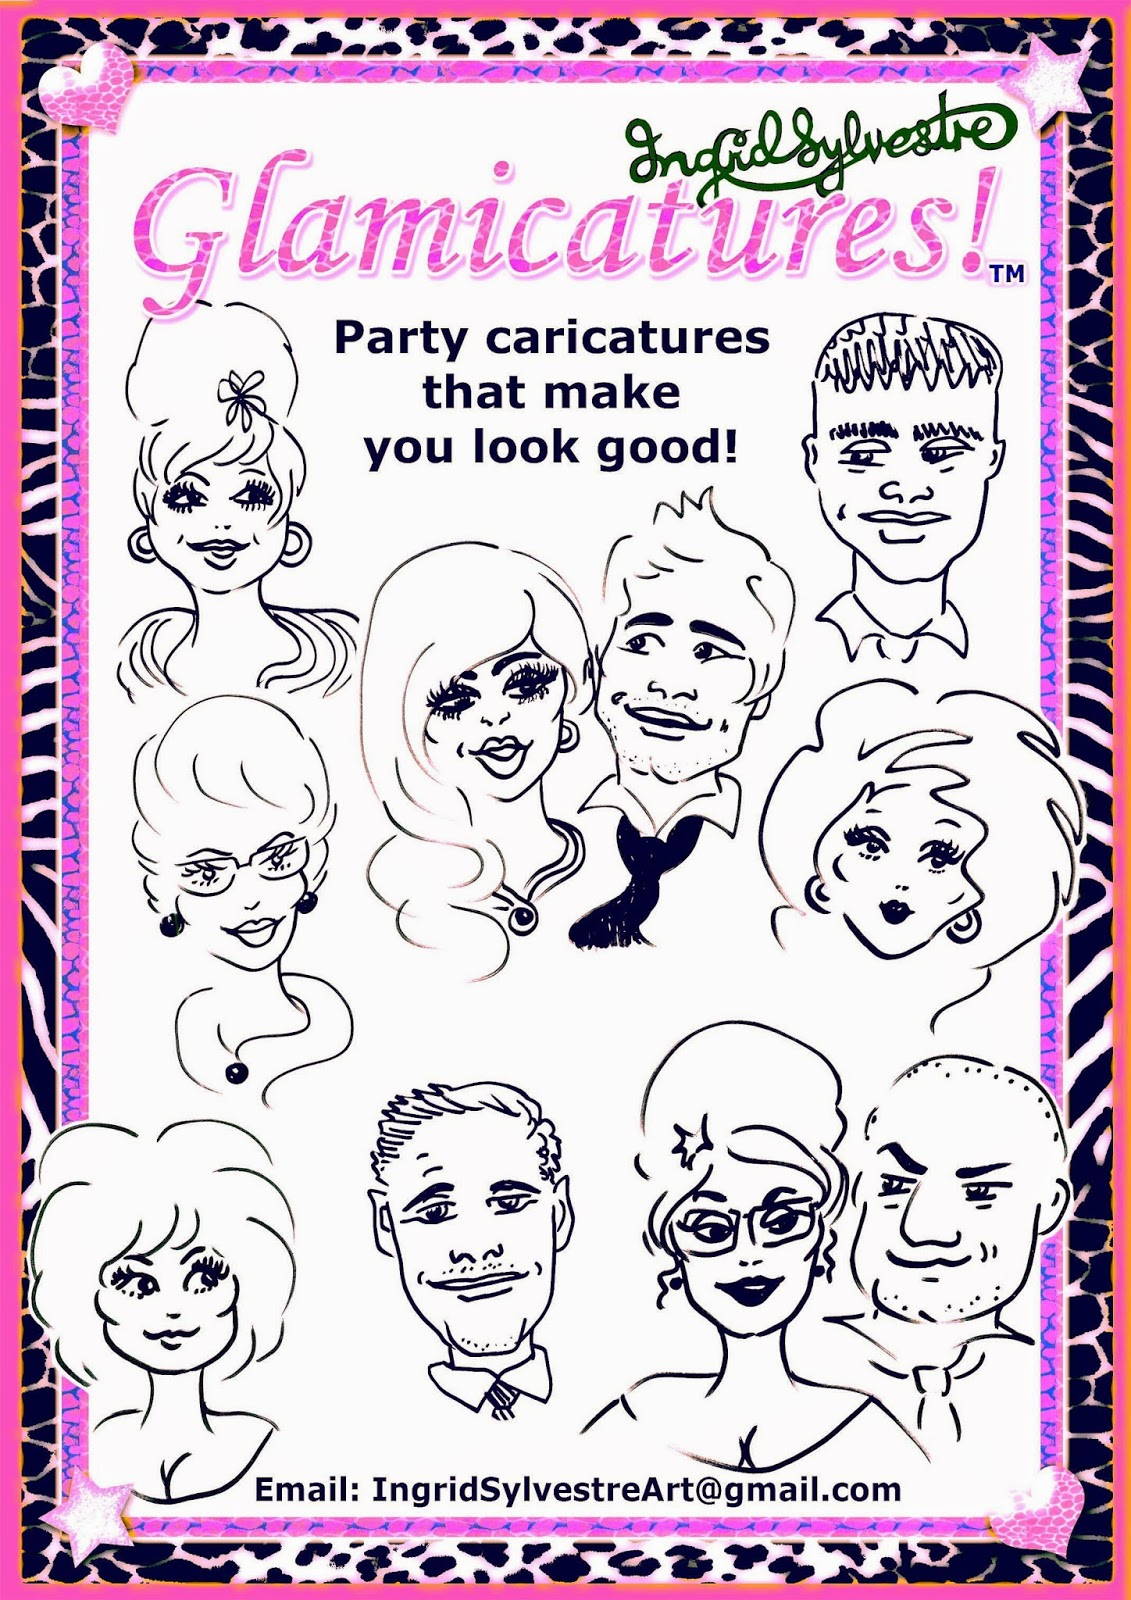 Luxury Wedding Entertainment ideas Glamicatures TM caricatures that make you look good Ingrid Sylvestre UK Wedding Entertainment Unique Wedding Entertainment England Unusual Wedding Entertainment High Class Wedding Entertainment